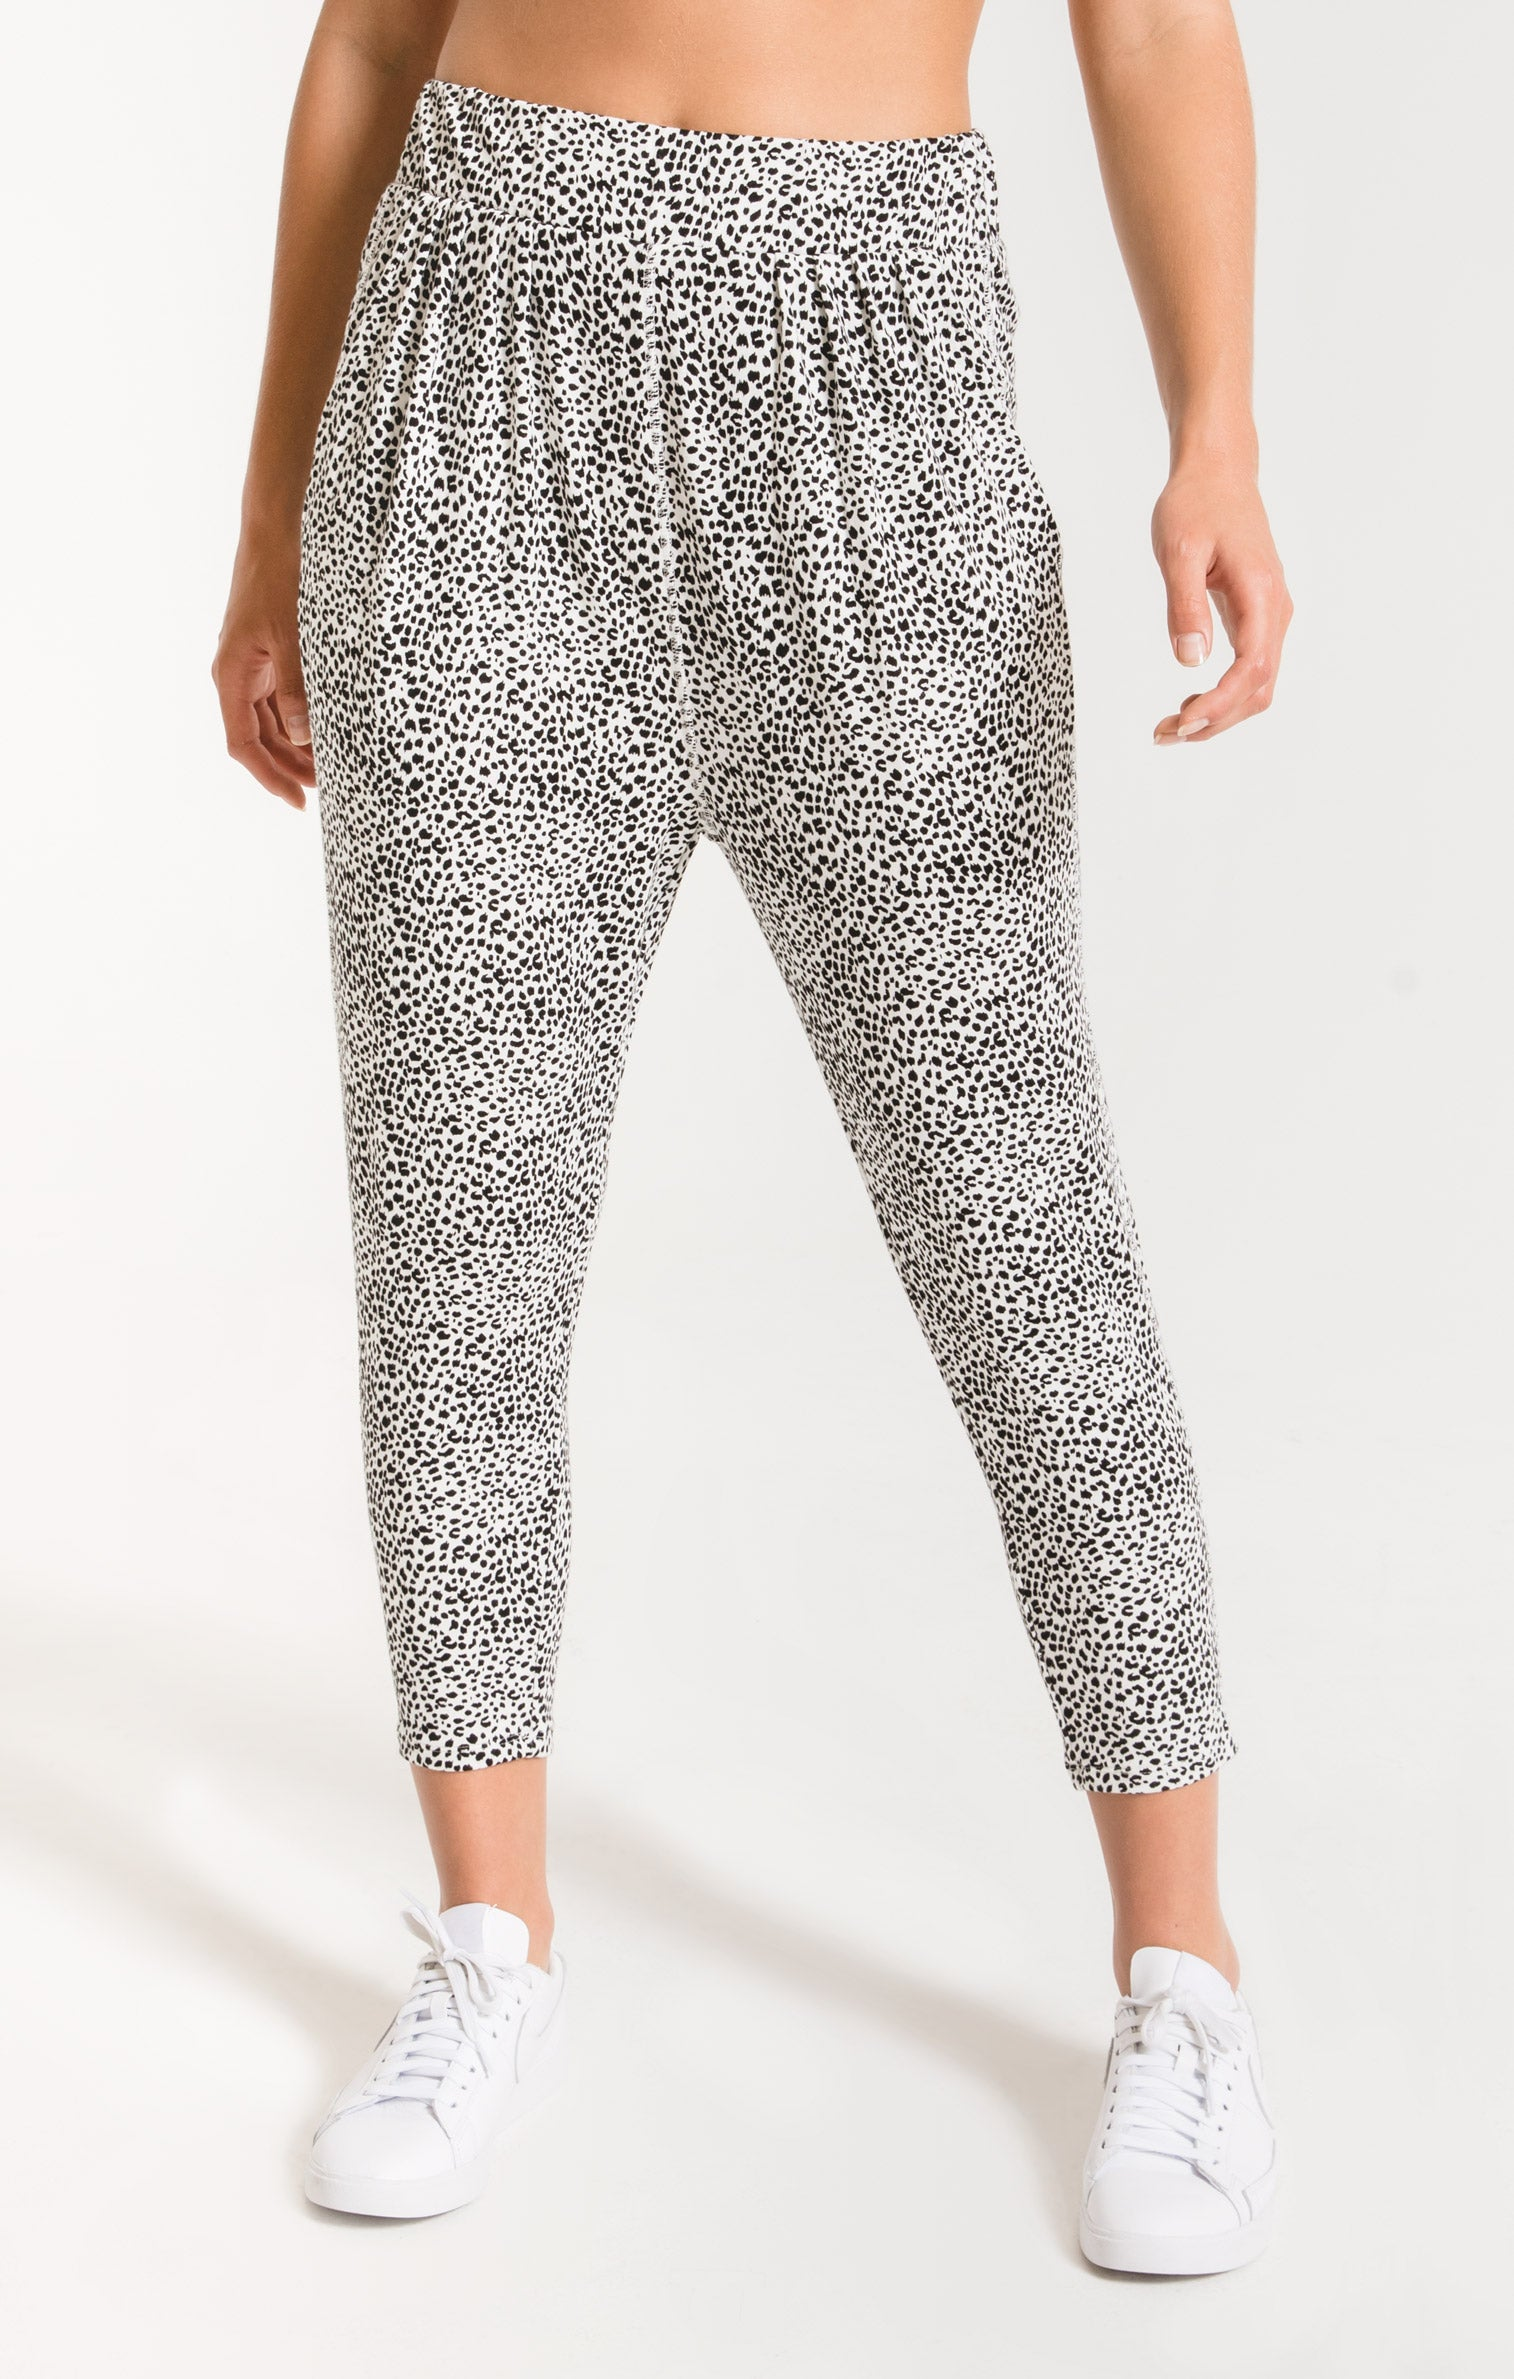 Pants Mini Leopard Pant Off White